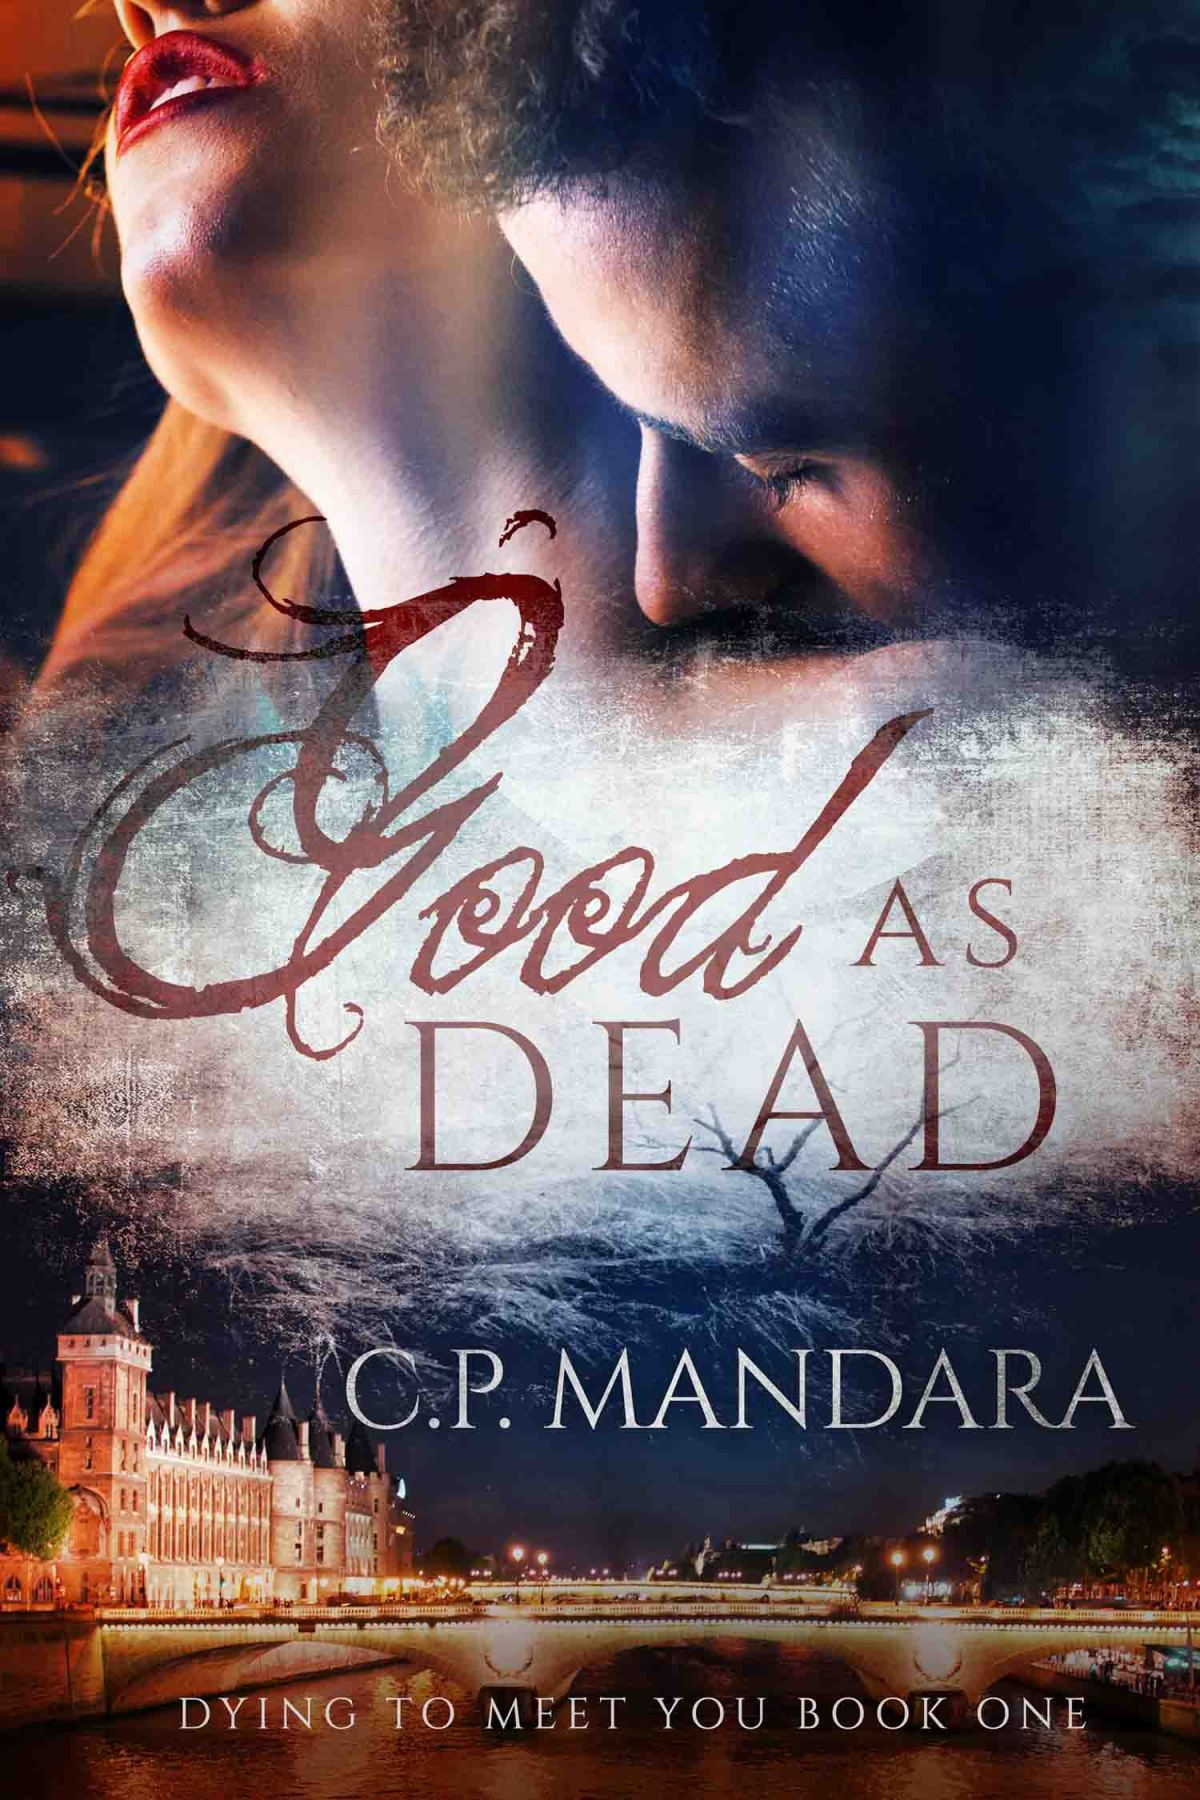 A special deal from Christina Mandara!